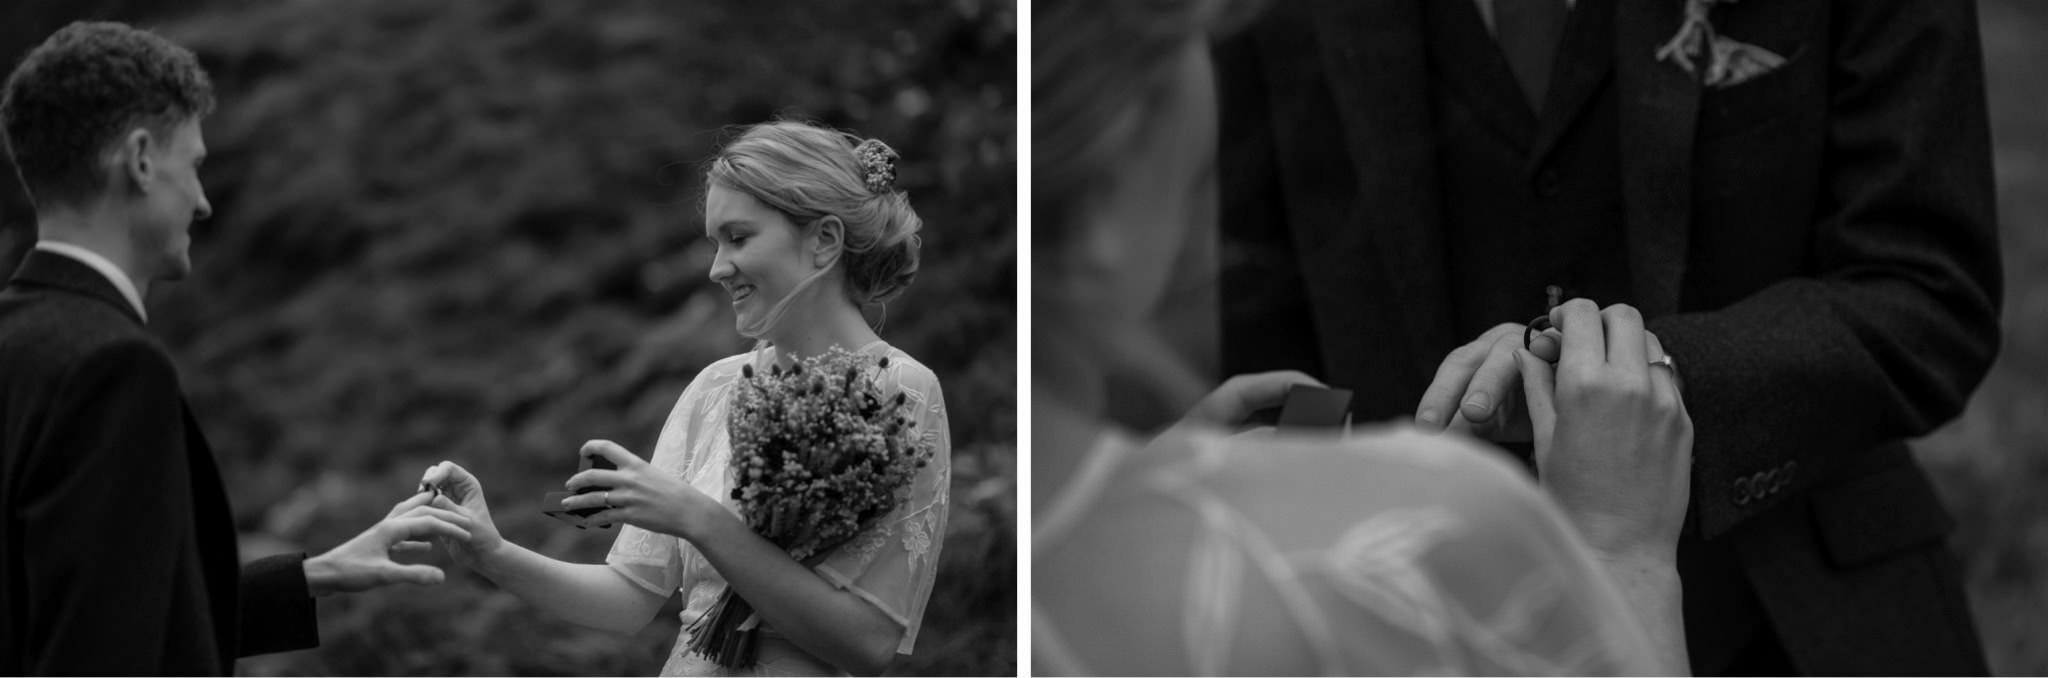 Bride and groom exchange rings during an intimate wedding for two in Scotland